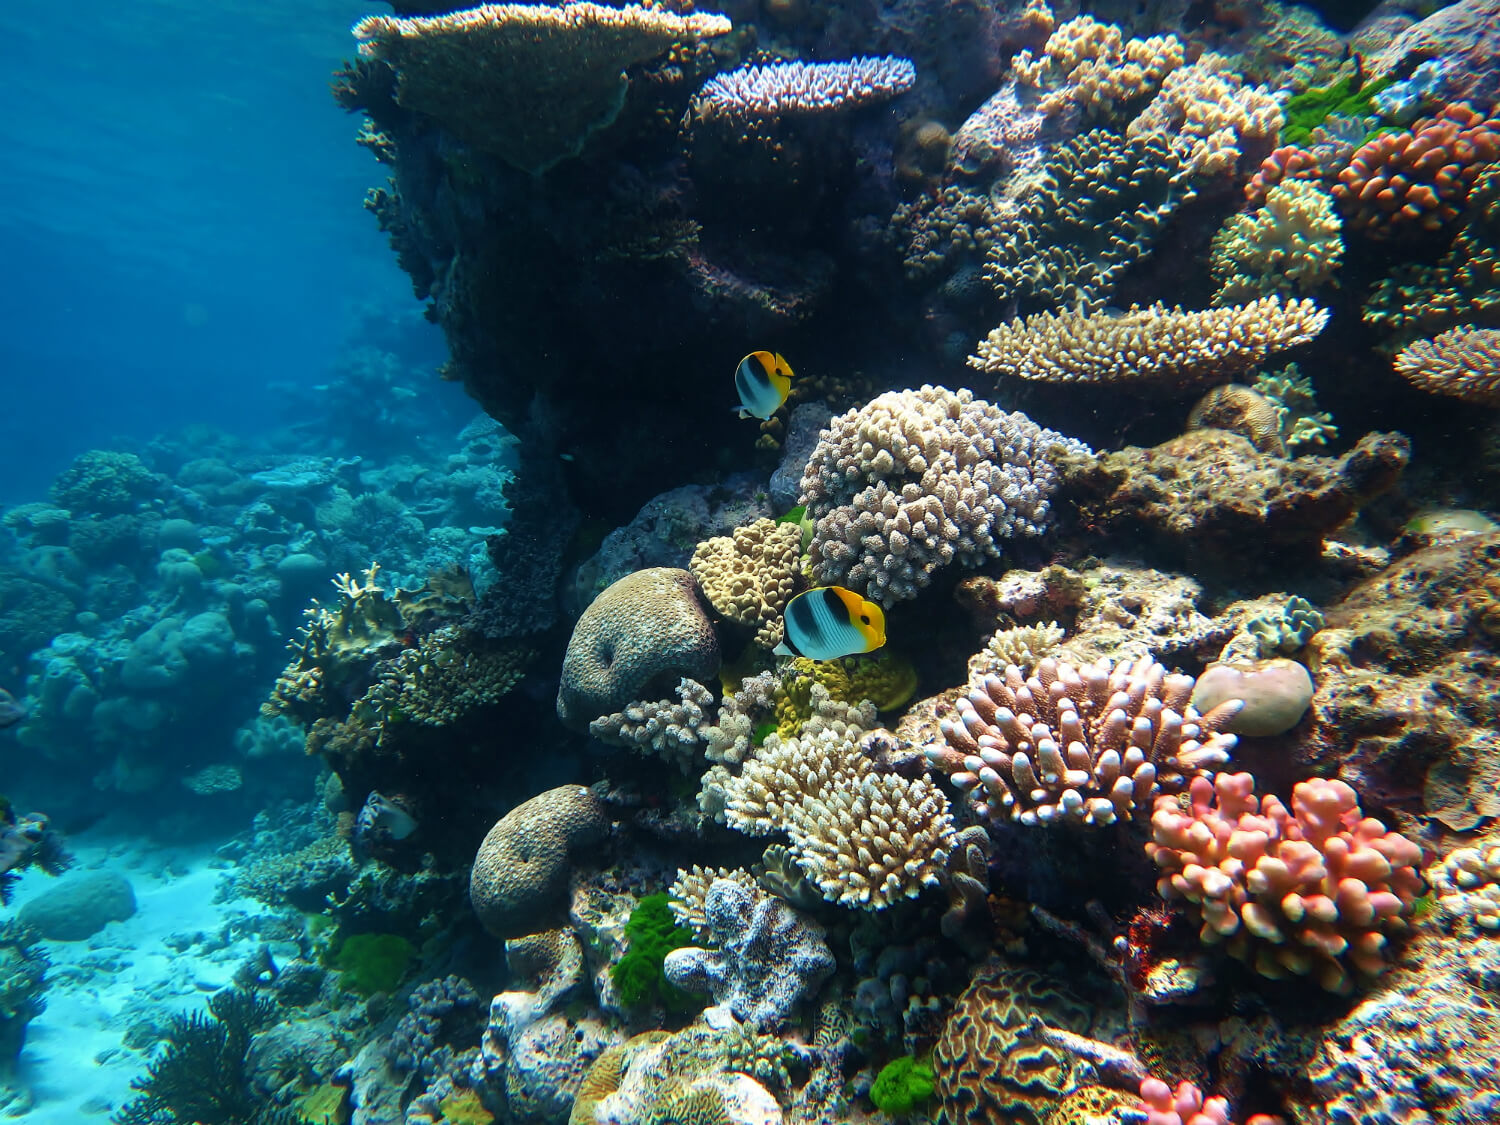 David Attenborough Warns Great Barrier Reef Will Be Dead By